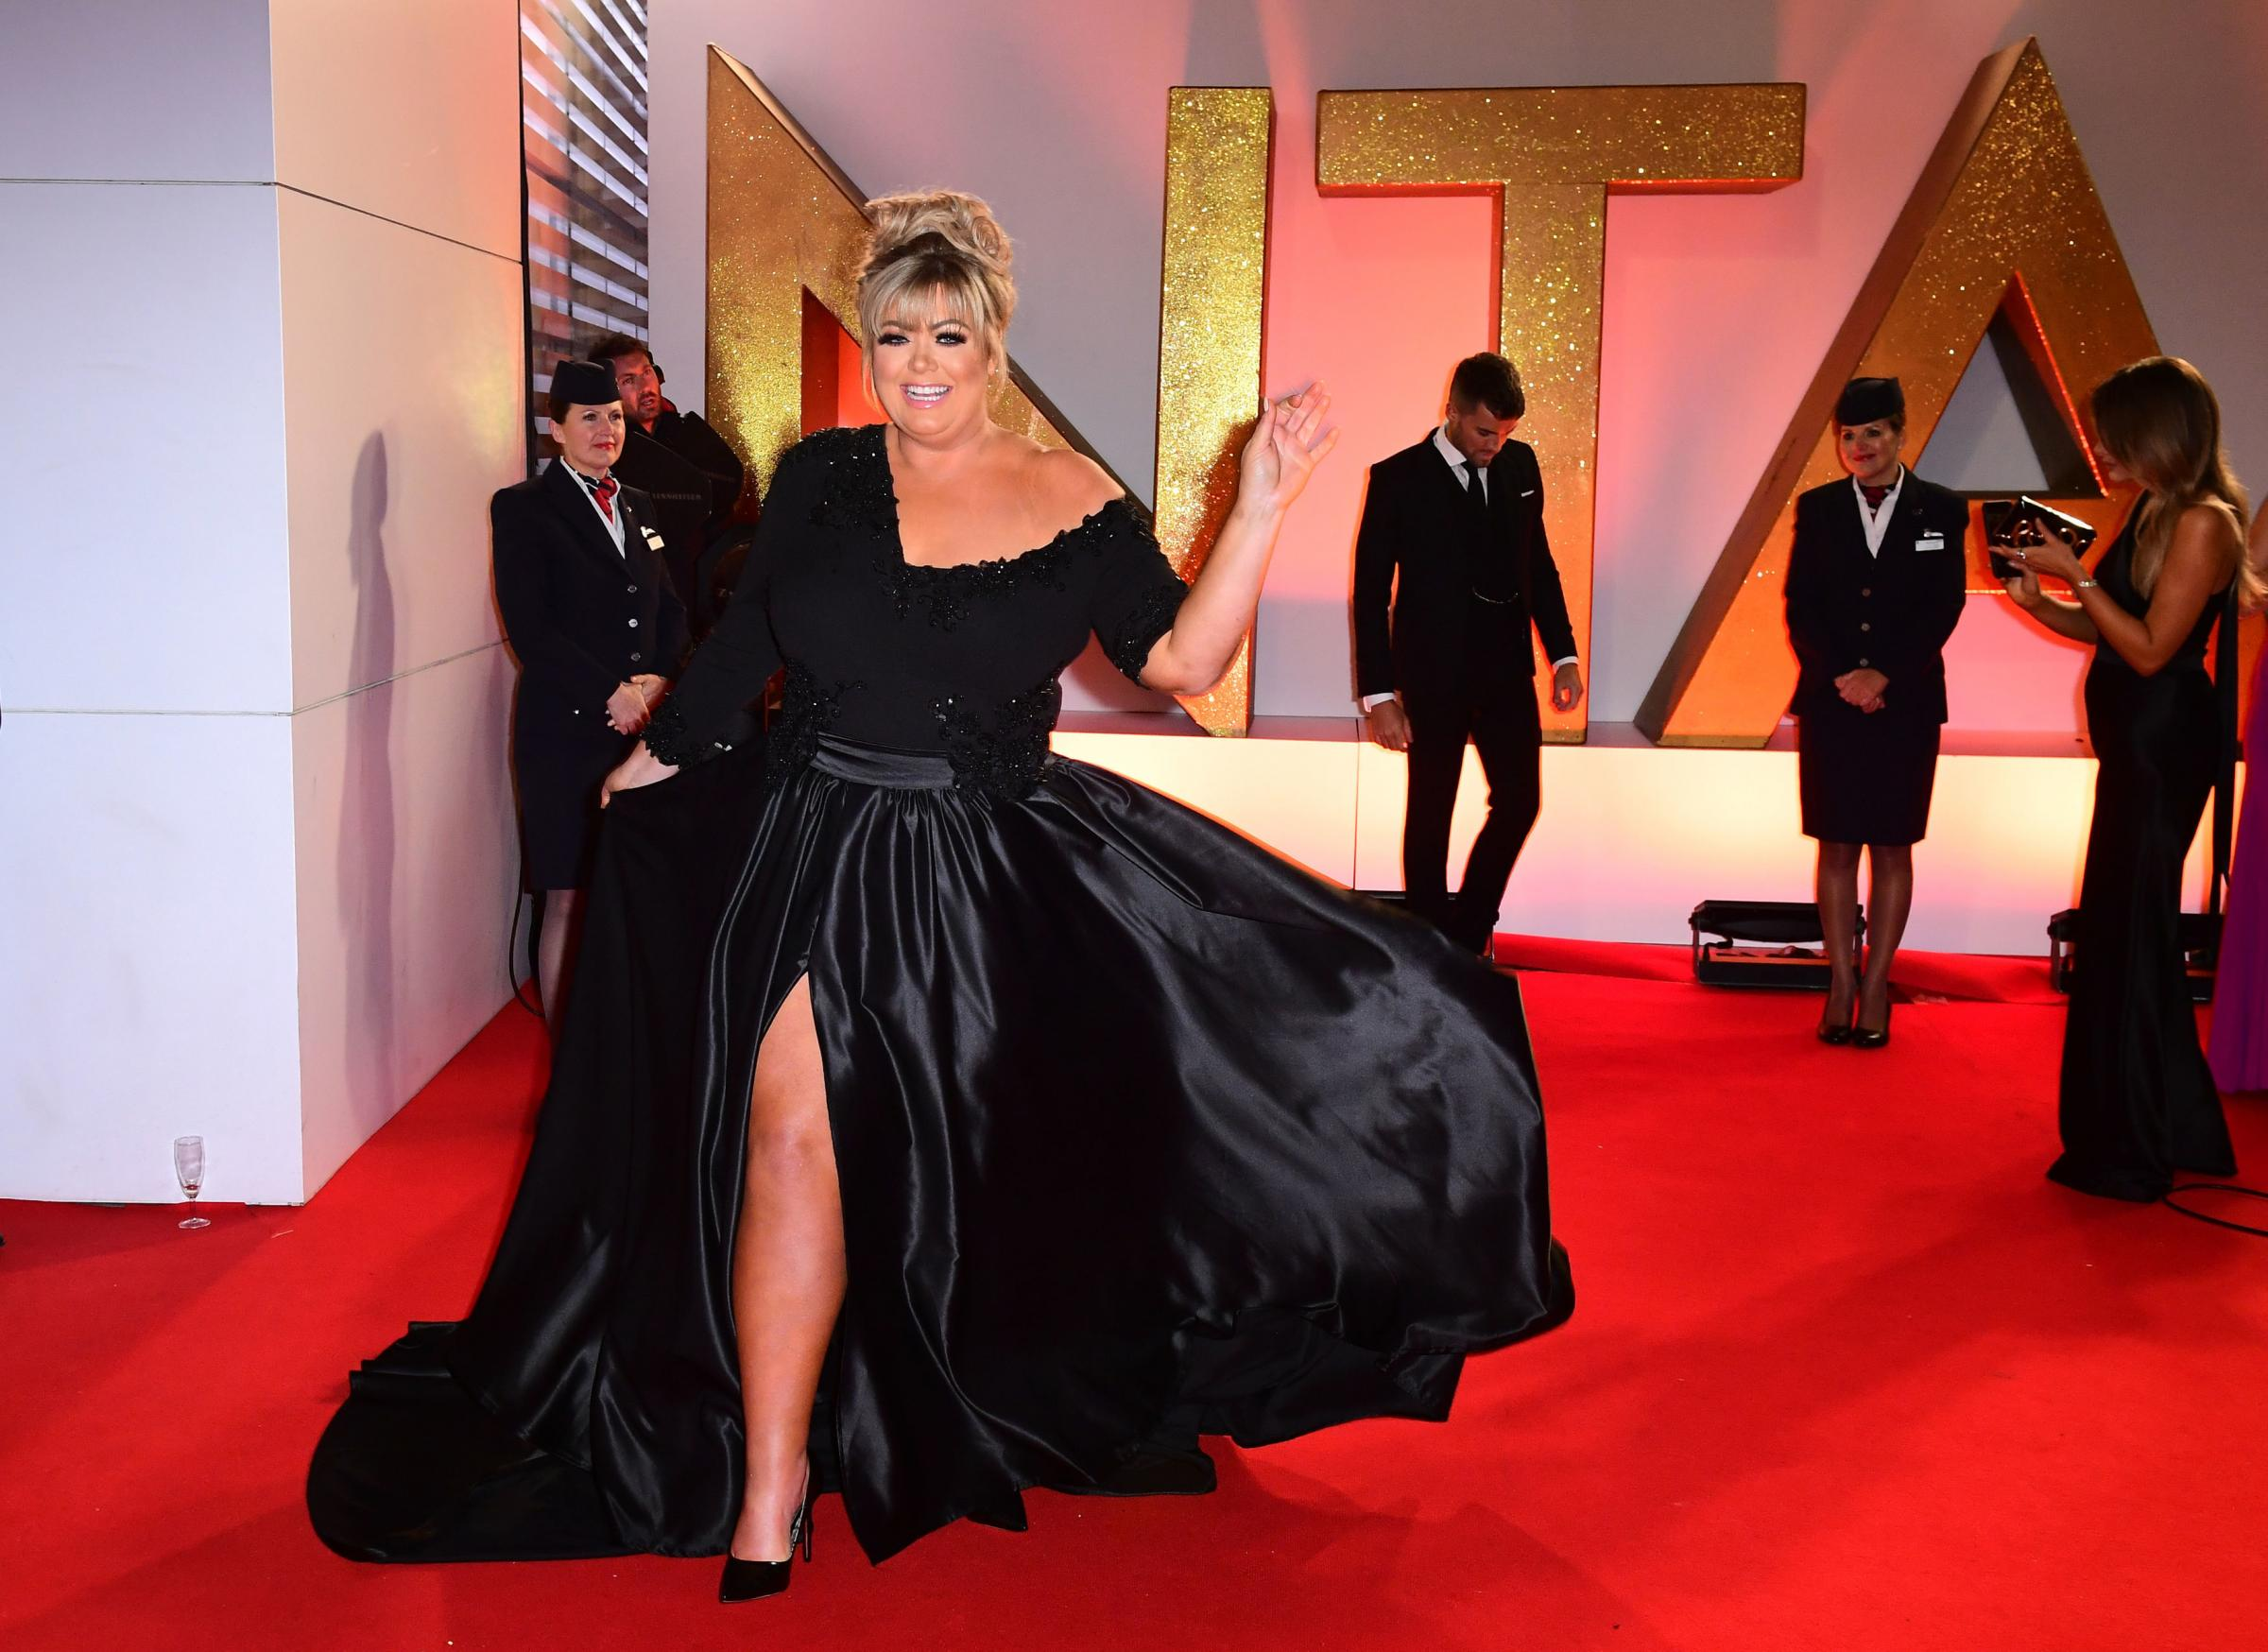 Gemma Collins attending the National Television Awards 2019 held at the O2 Arena, London. PRESS ASSOCIATION PHOTO. Picture date: Tuesday January 22, 2019. See PA story SHOWBIZ NTAs. Photo credit should read: Ian West/PA Wire